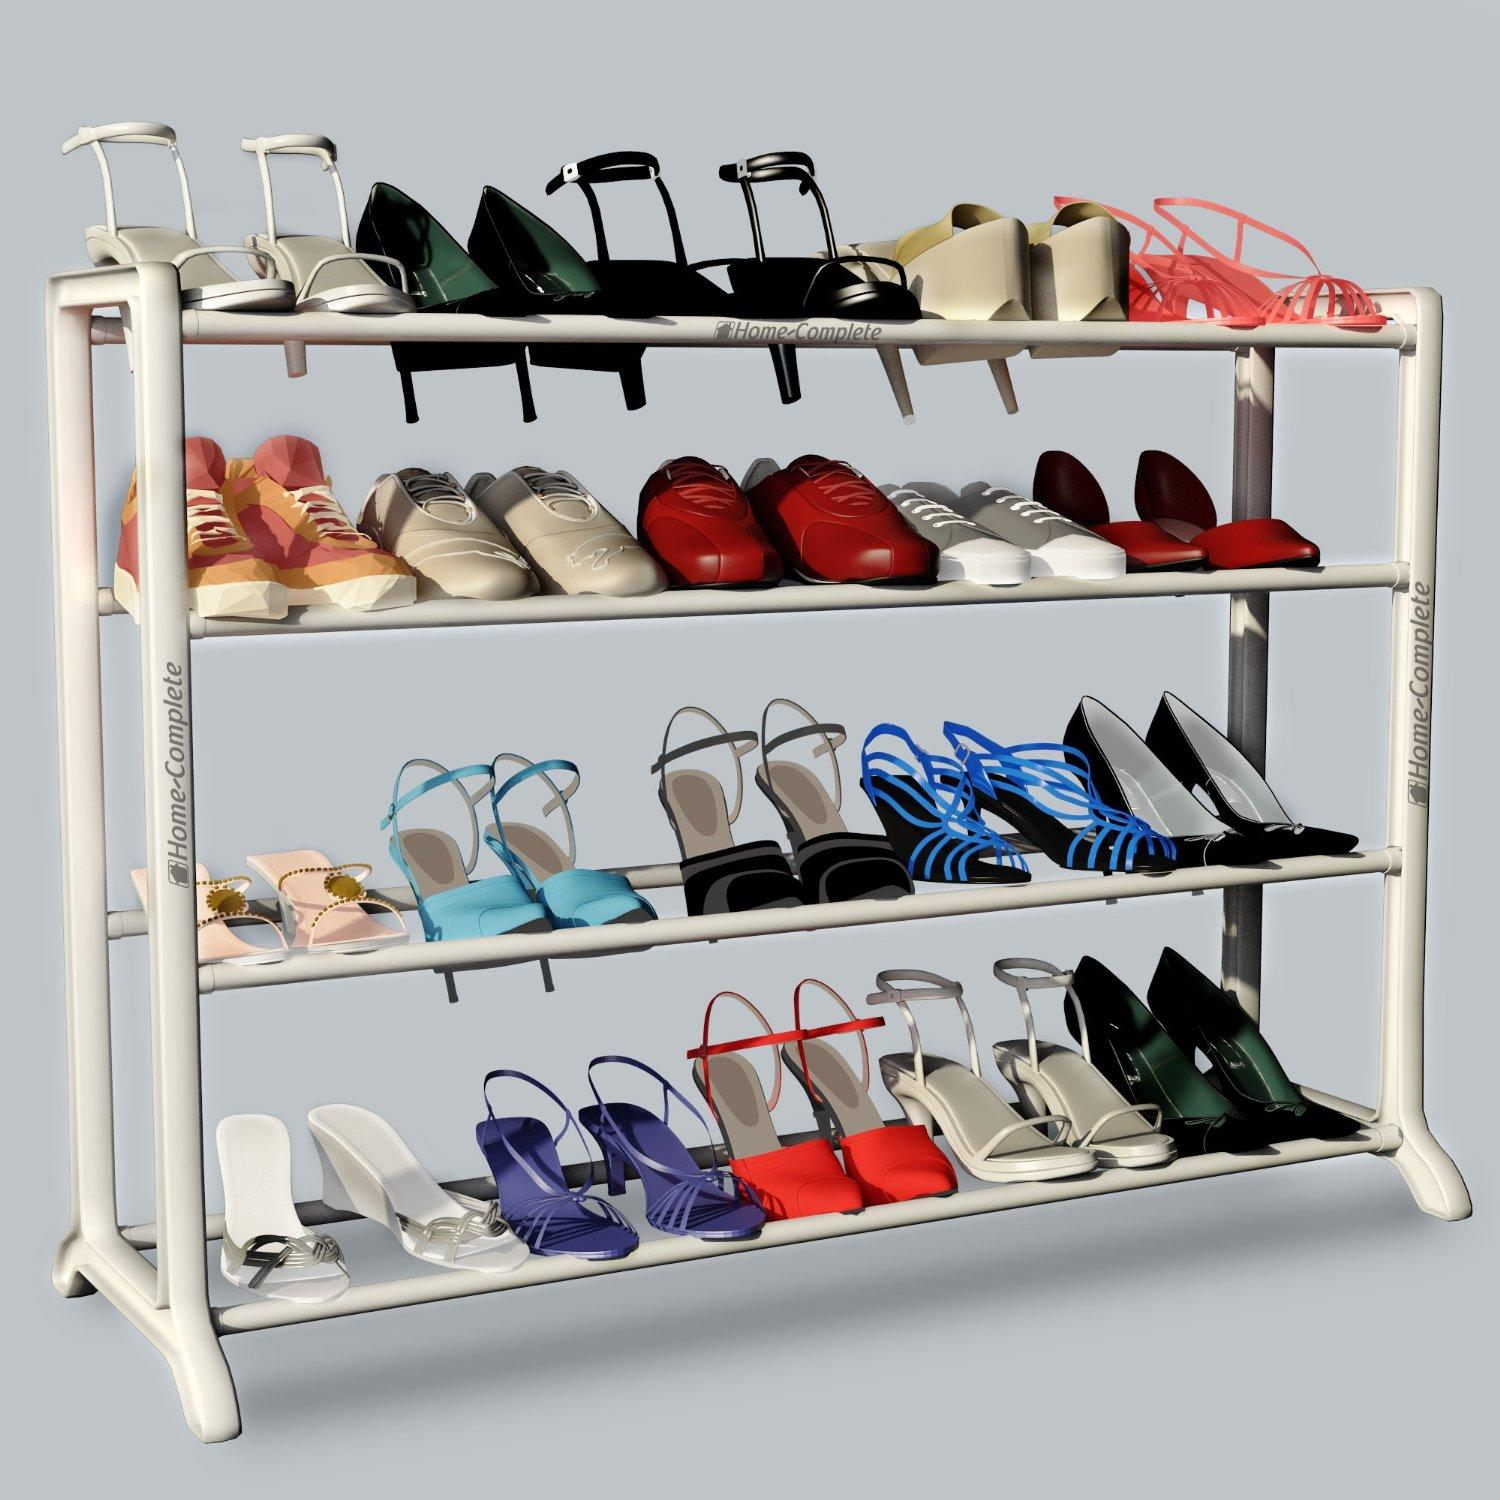 $12.99 Neatlizer Shoe Rack Organizer Storage Bench, Store up to 20 Pairs for Closet Cabinet or Entryway